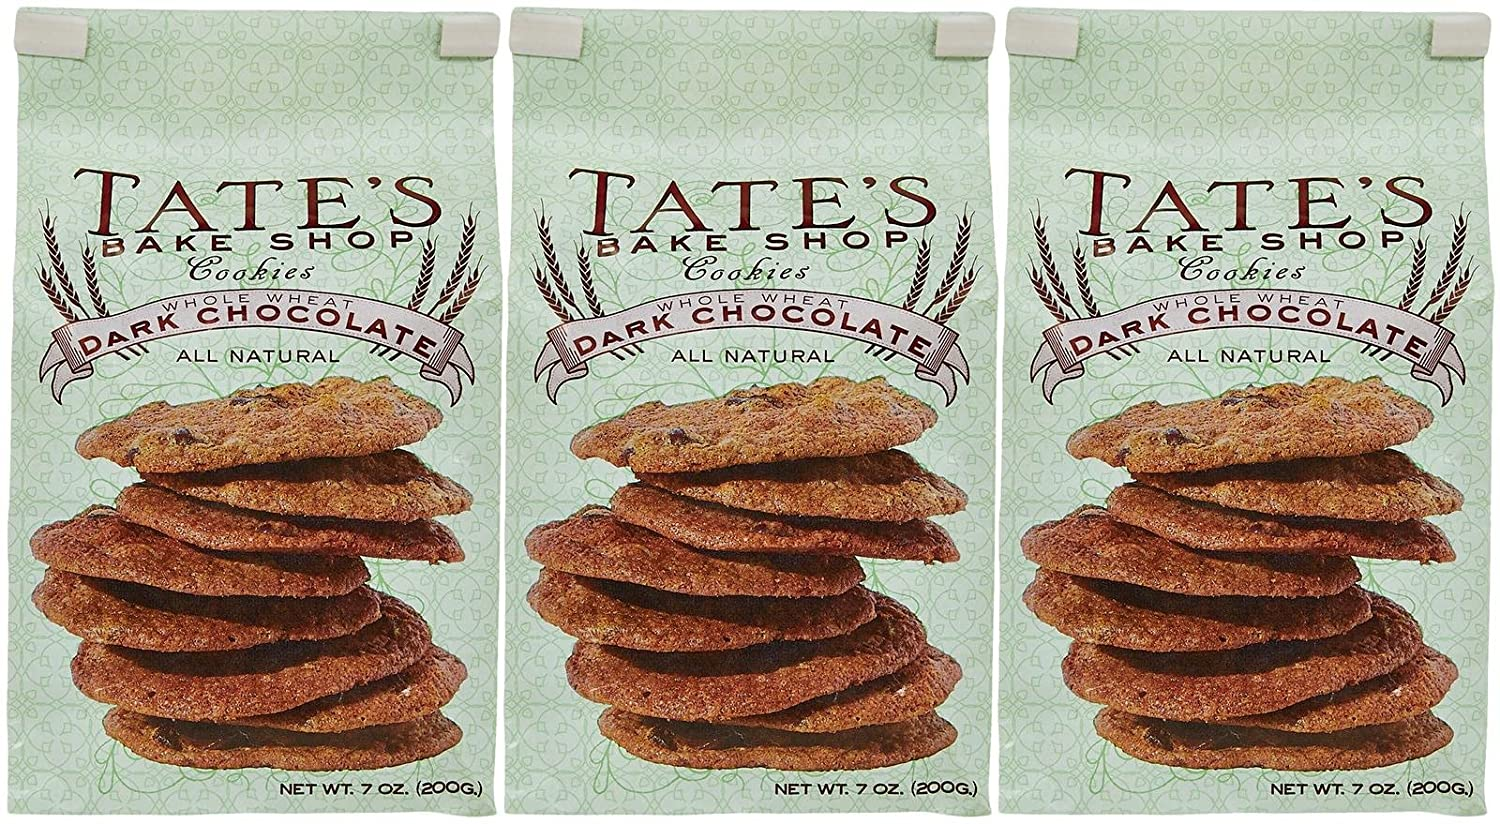 Amazon.com: Tate's Bake Shop Cookies - Whole Wheat Dark Chocolate ...